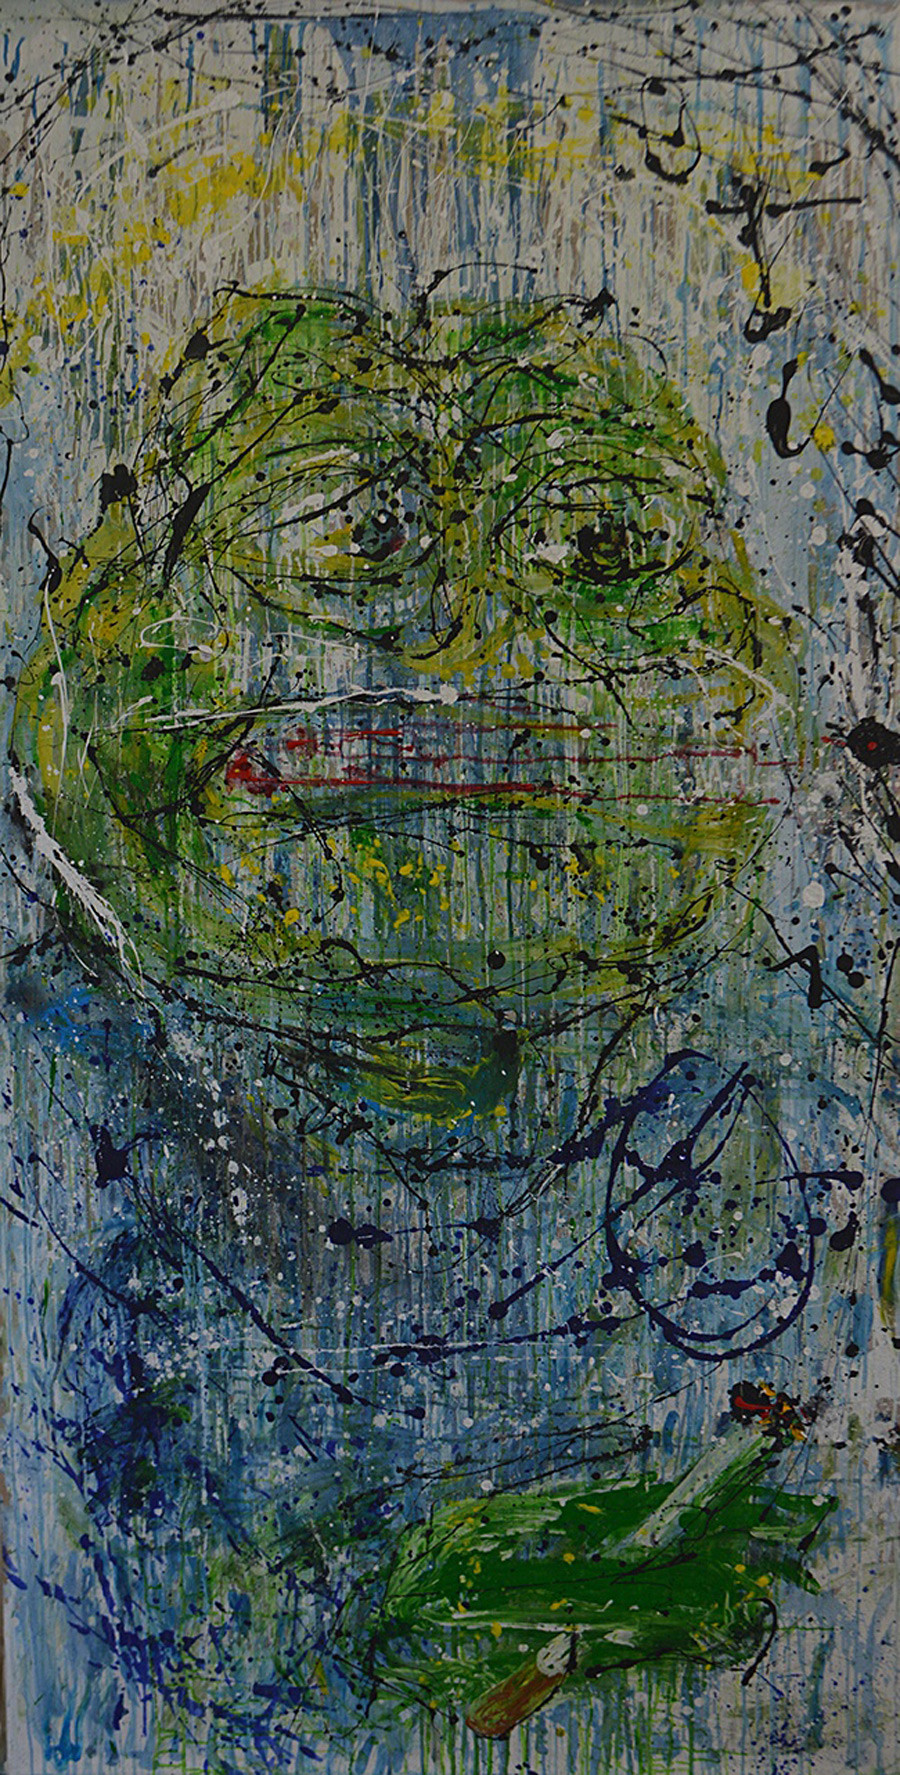 Pepe Pollock (based on several works by Jackson Pollock).